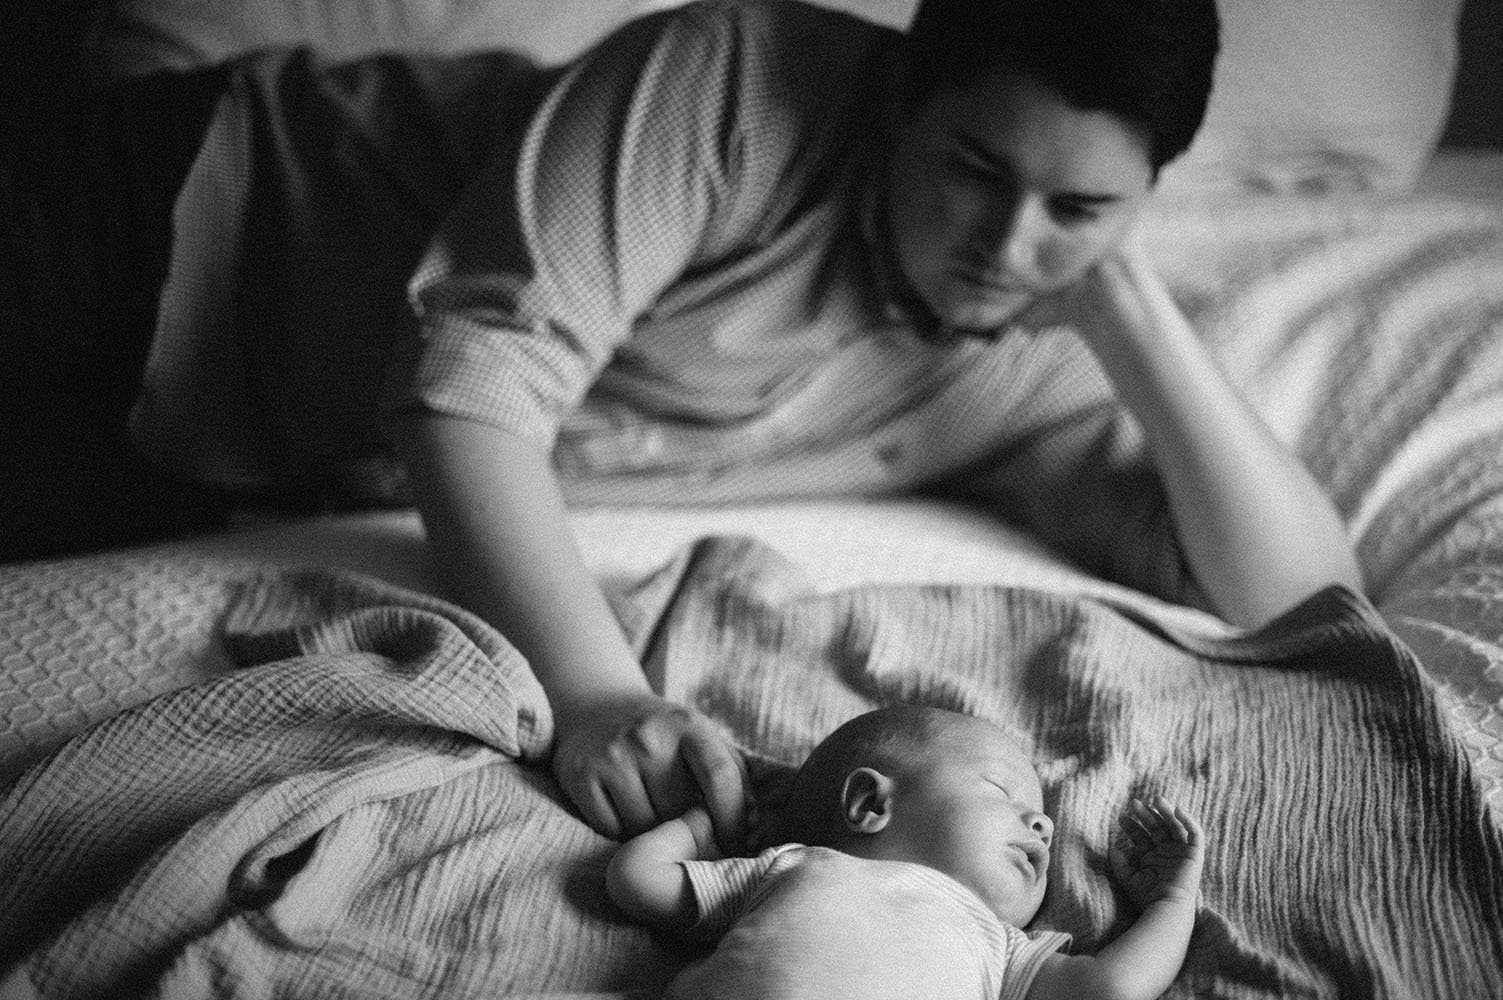 Black and white photo of Dad and newborn baby